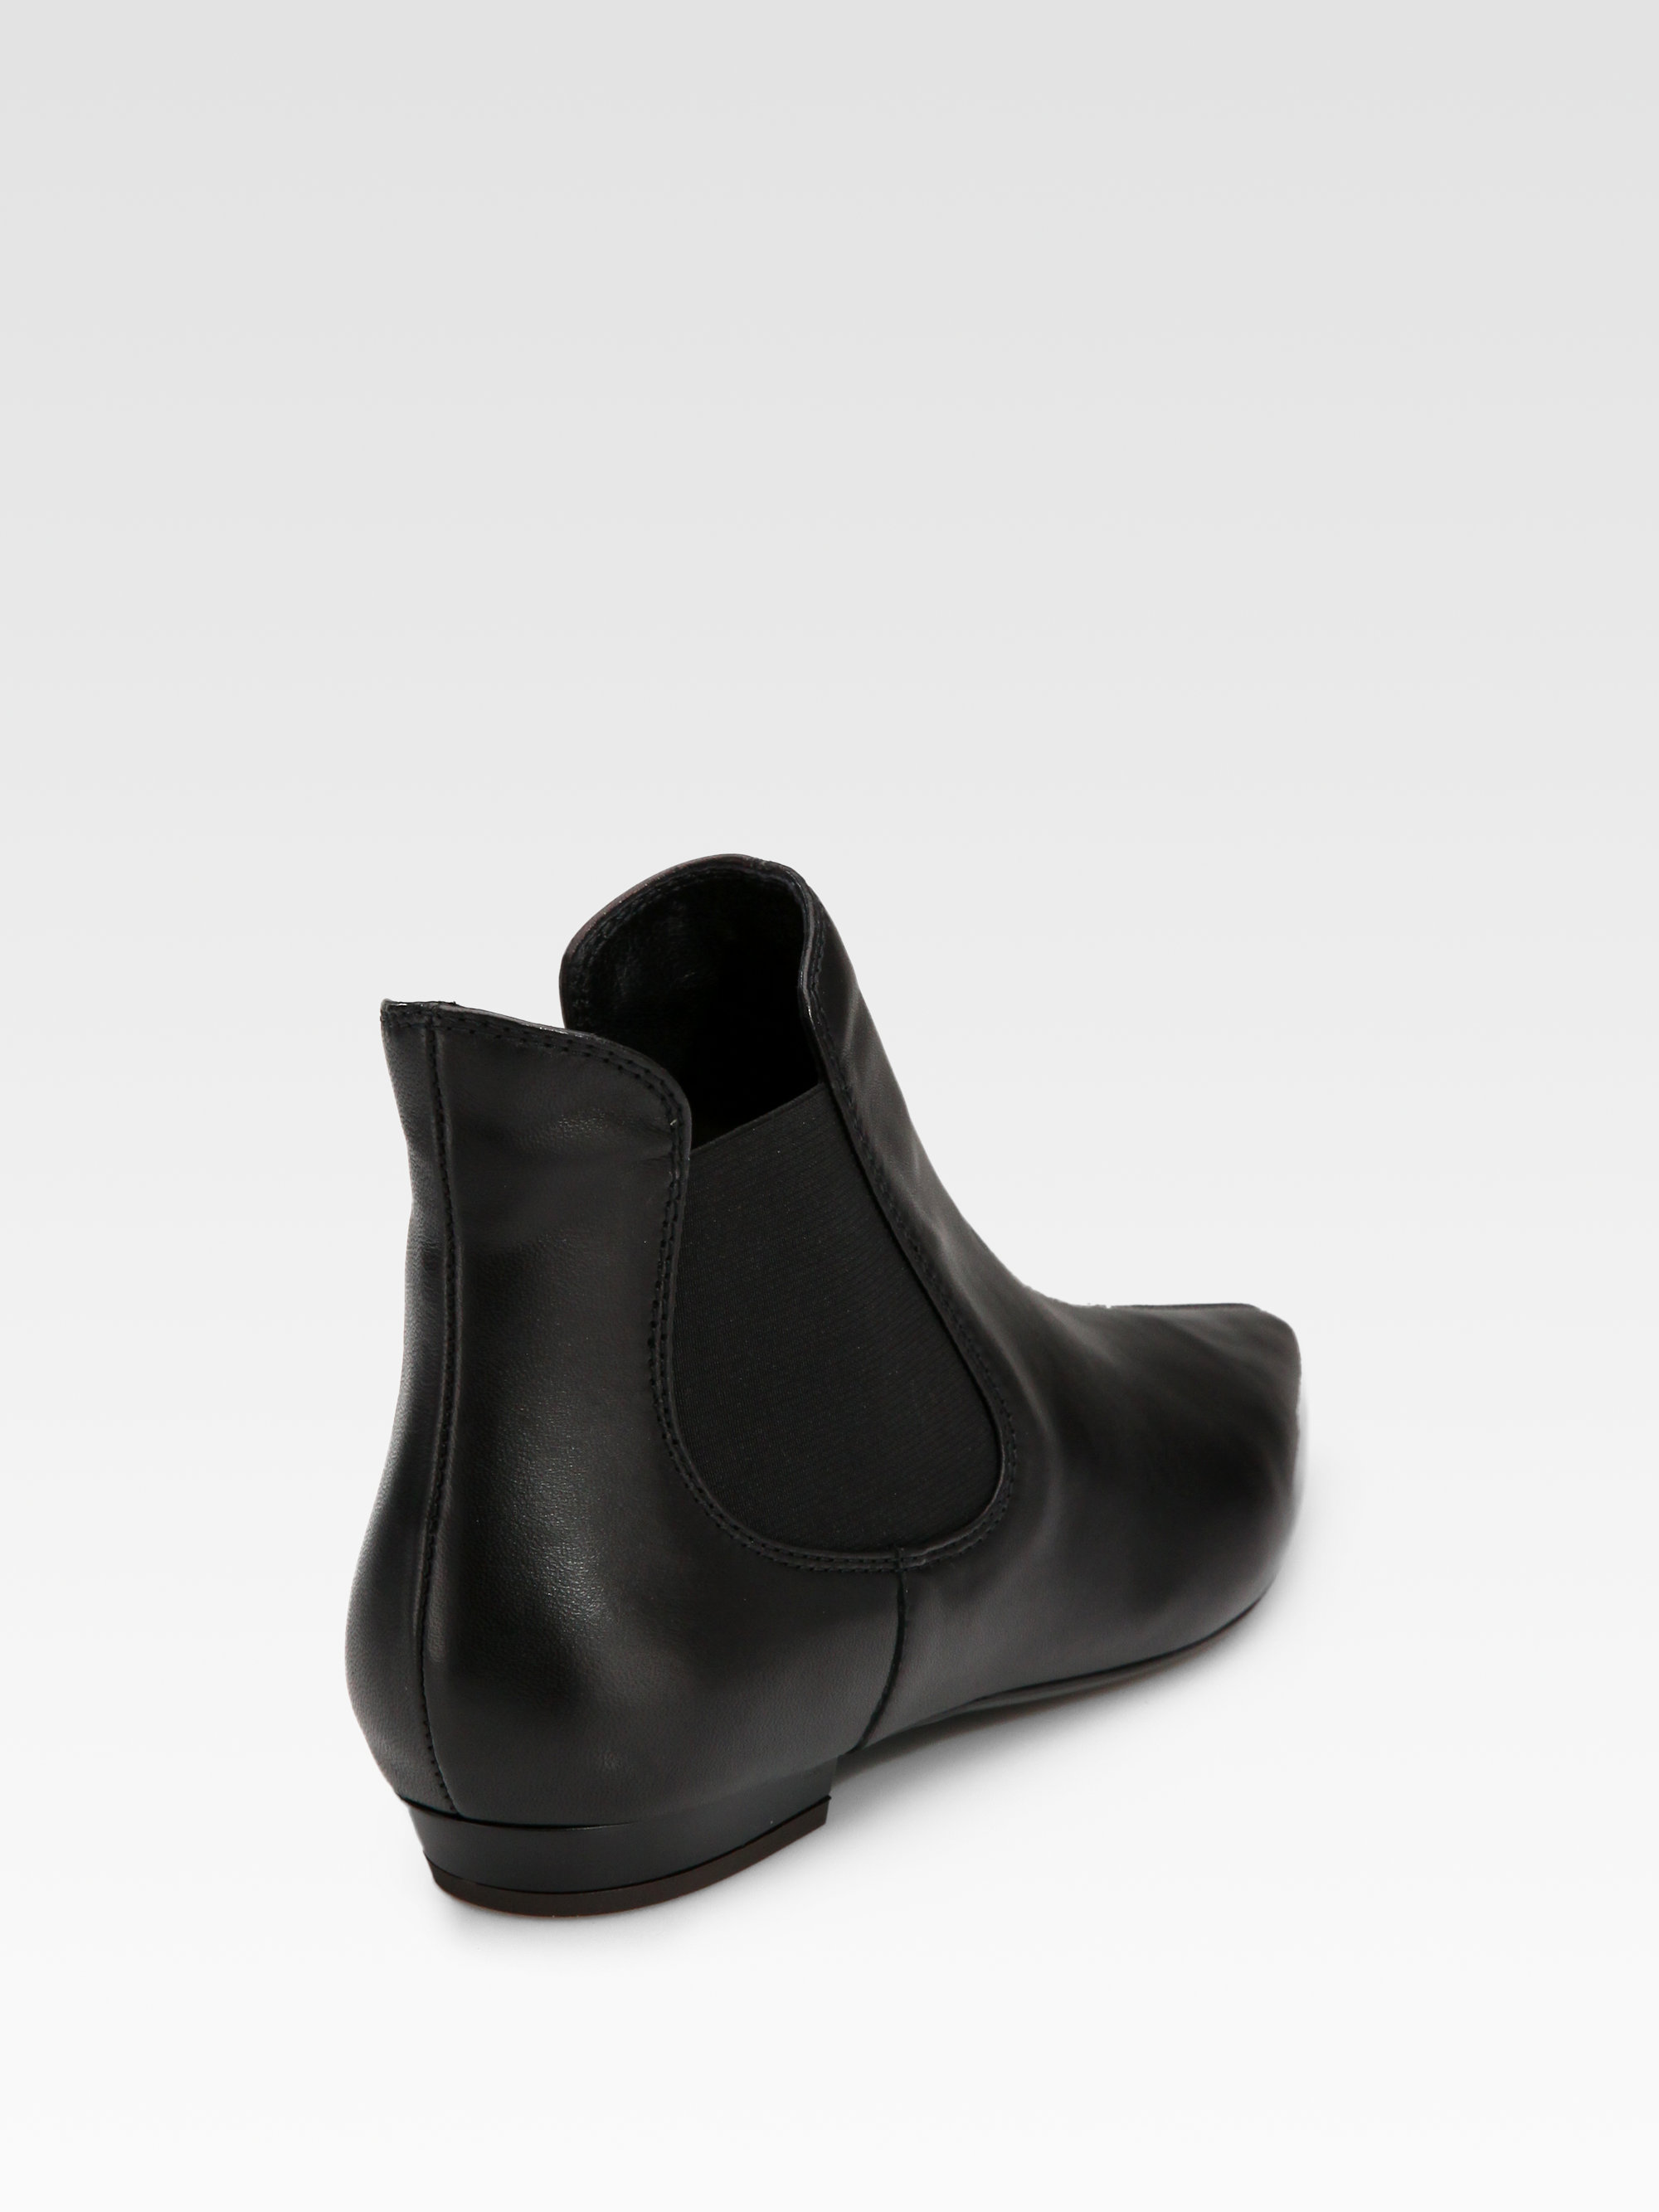 Giuseppe zanotti Flat Leather Ankle Boots in Black | Lyst